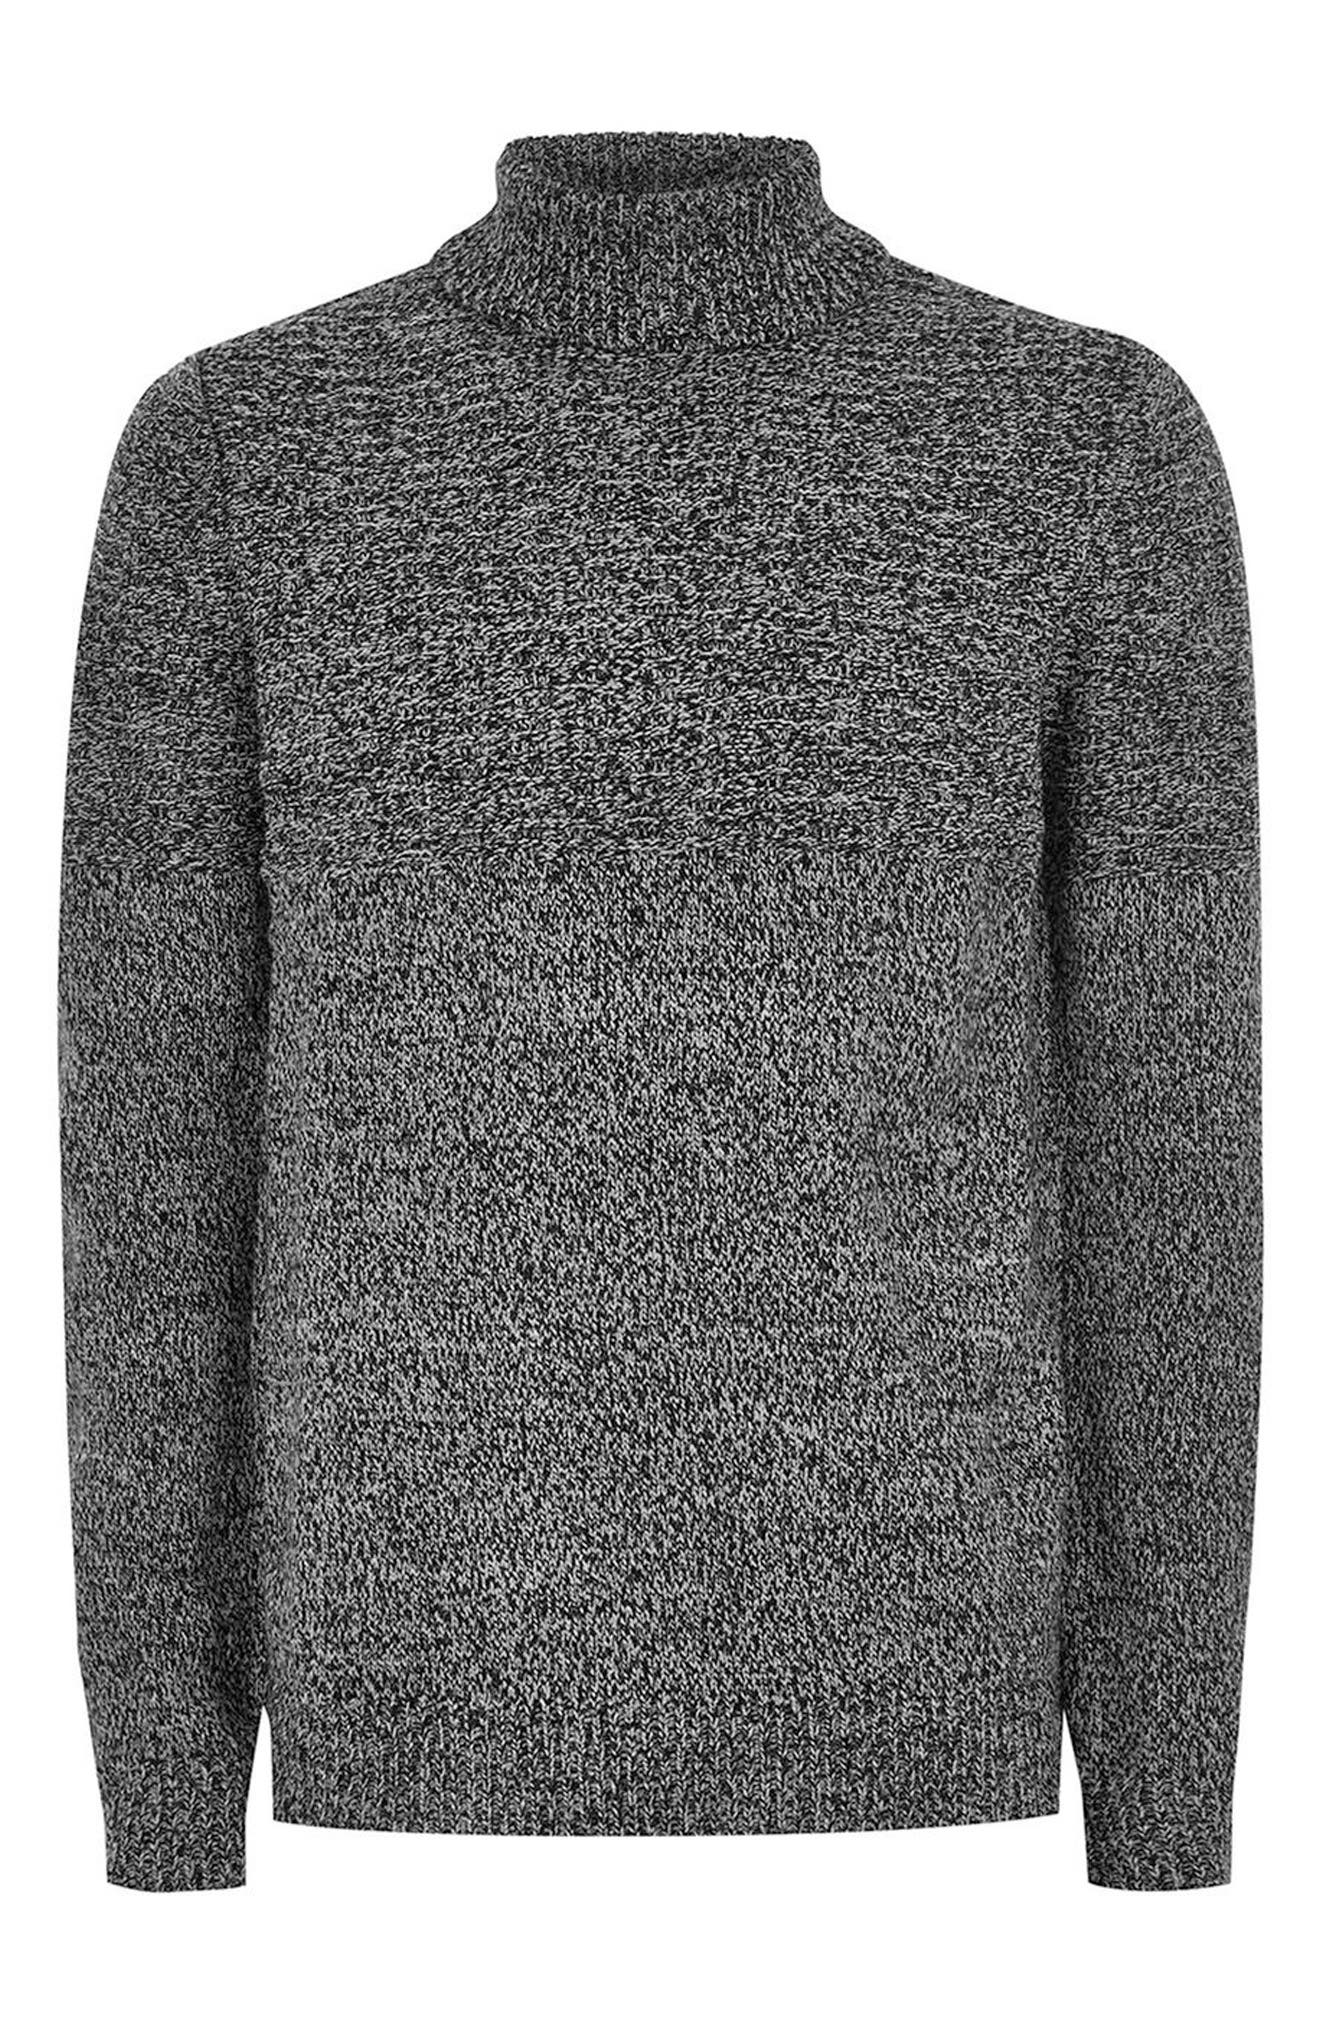 Twist Roll Neck Sweater,                             Alternate thumbnail 3, color,                             020